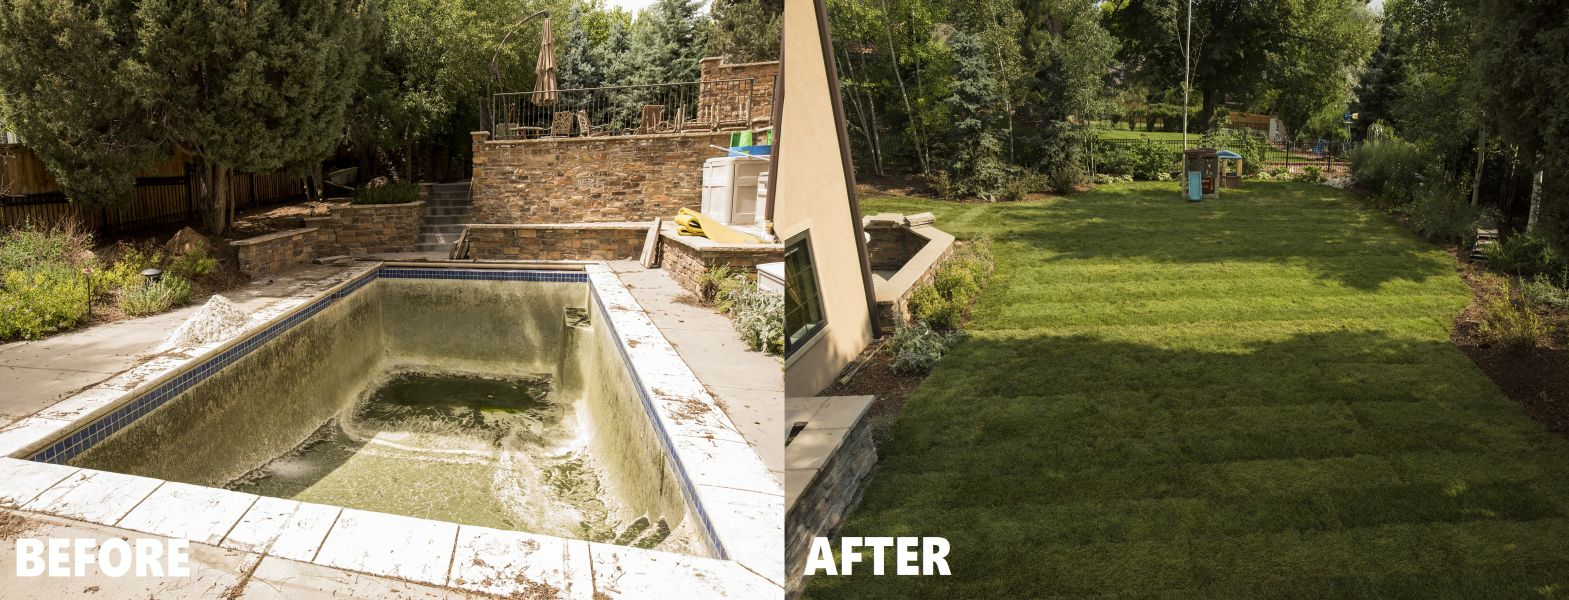 Mack Land LLC - Greenwood Village, CO – Pool Removal